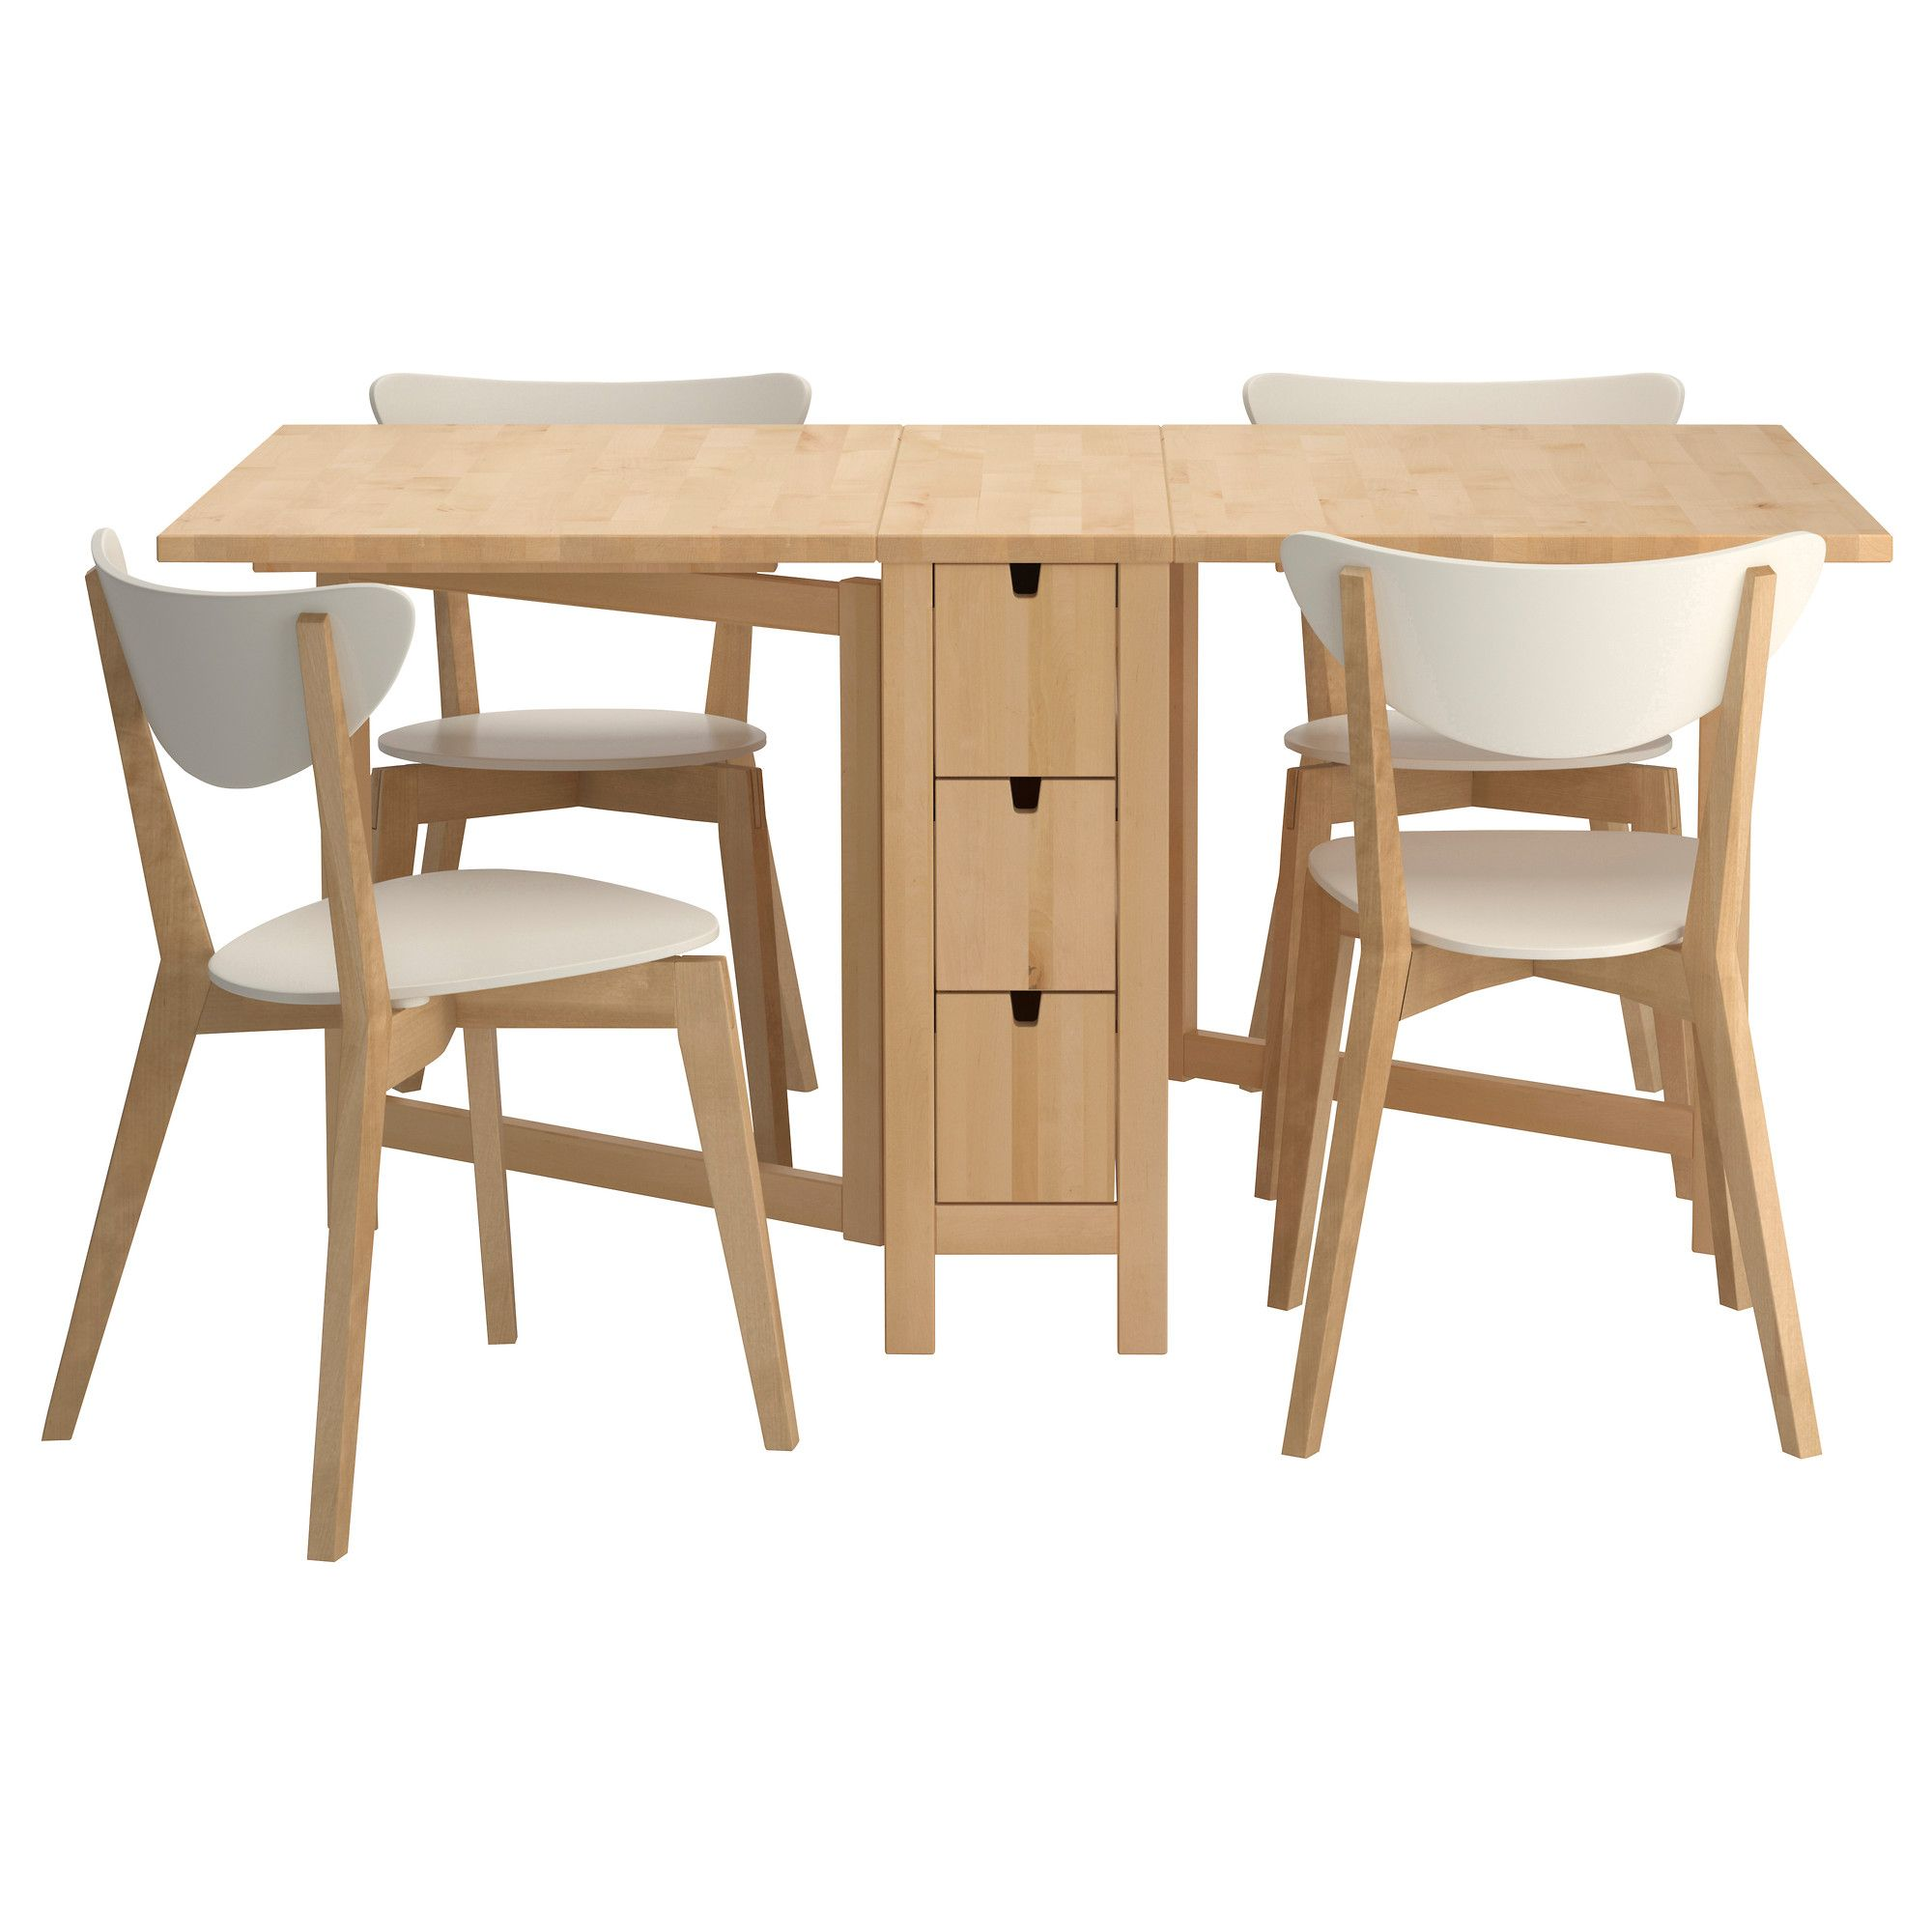 Norden Nordmyra Table And 4 Chairs Ikea For The Love Of Kitchens Pinterest Ikea Dining